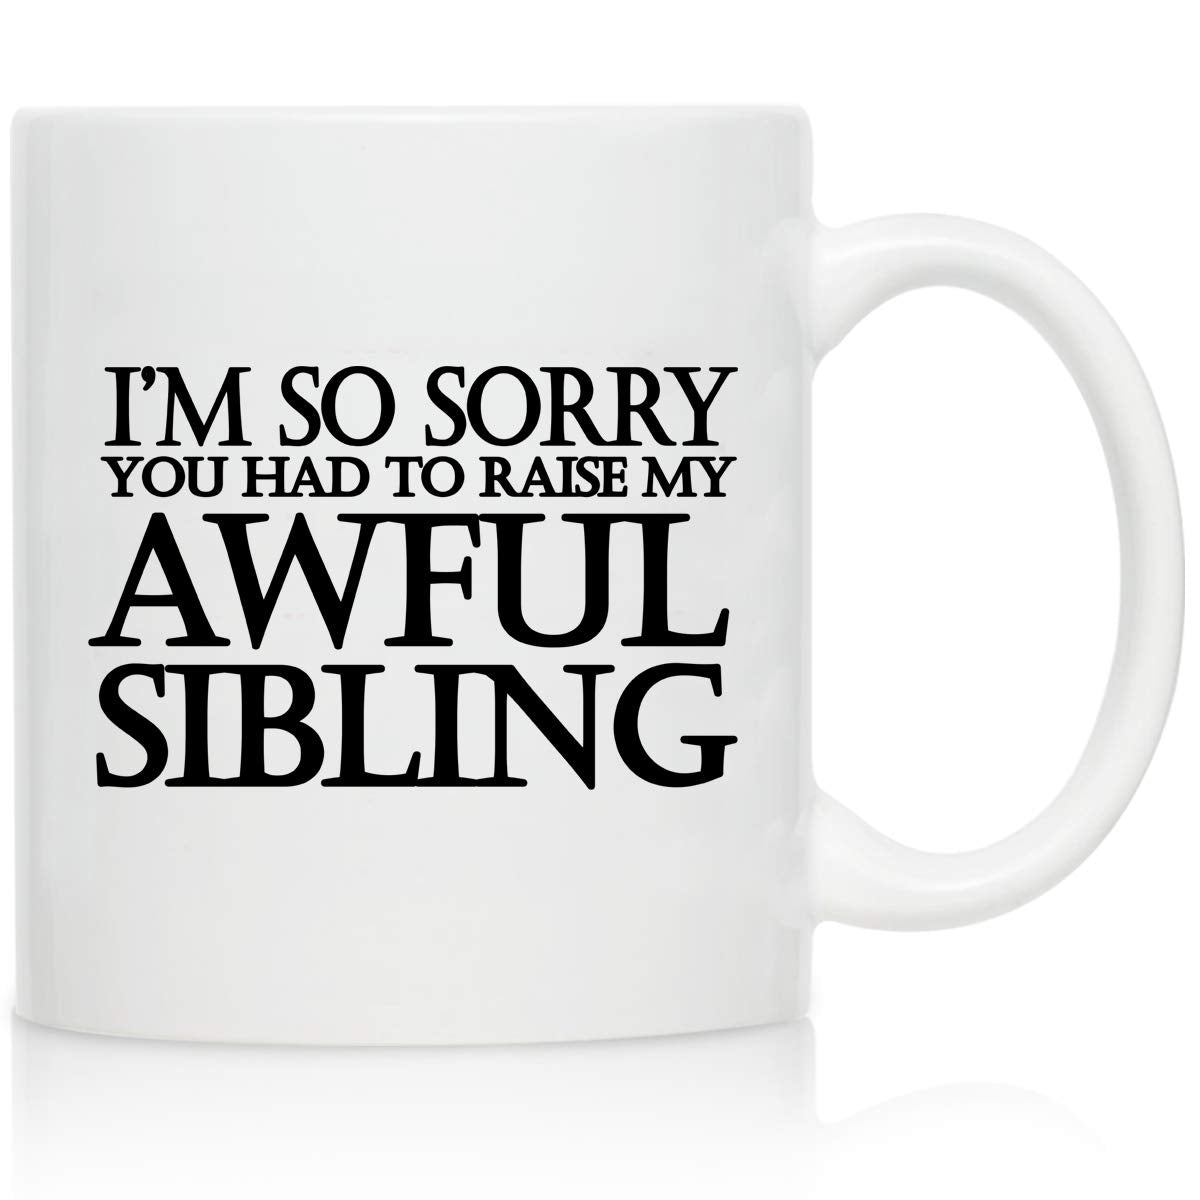 Awful Sibling Mom or Dad Coffee Mug- Gift Idea for Fathers or Mothers- Parent Gift- Best Dad or Mom Gift- Gag Father's Day Mother's Day Gift- Funny Birthday Present for Mom or Dad From Daughter, Son